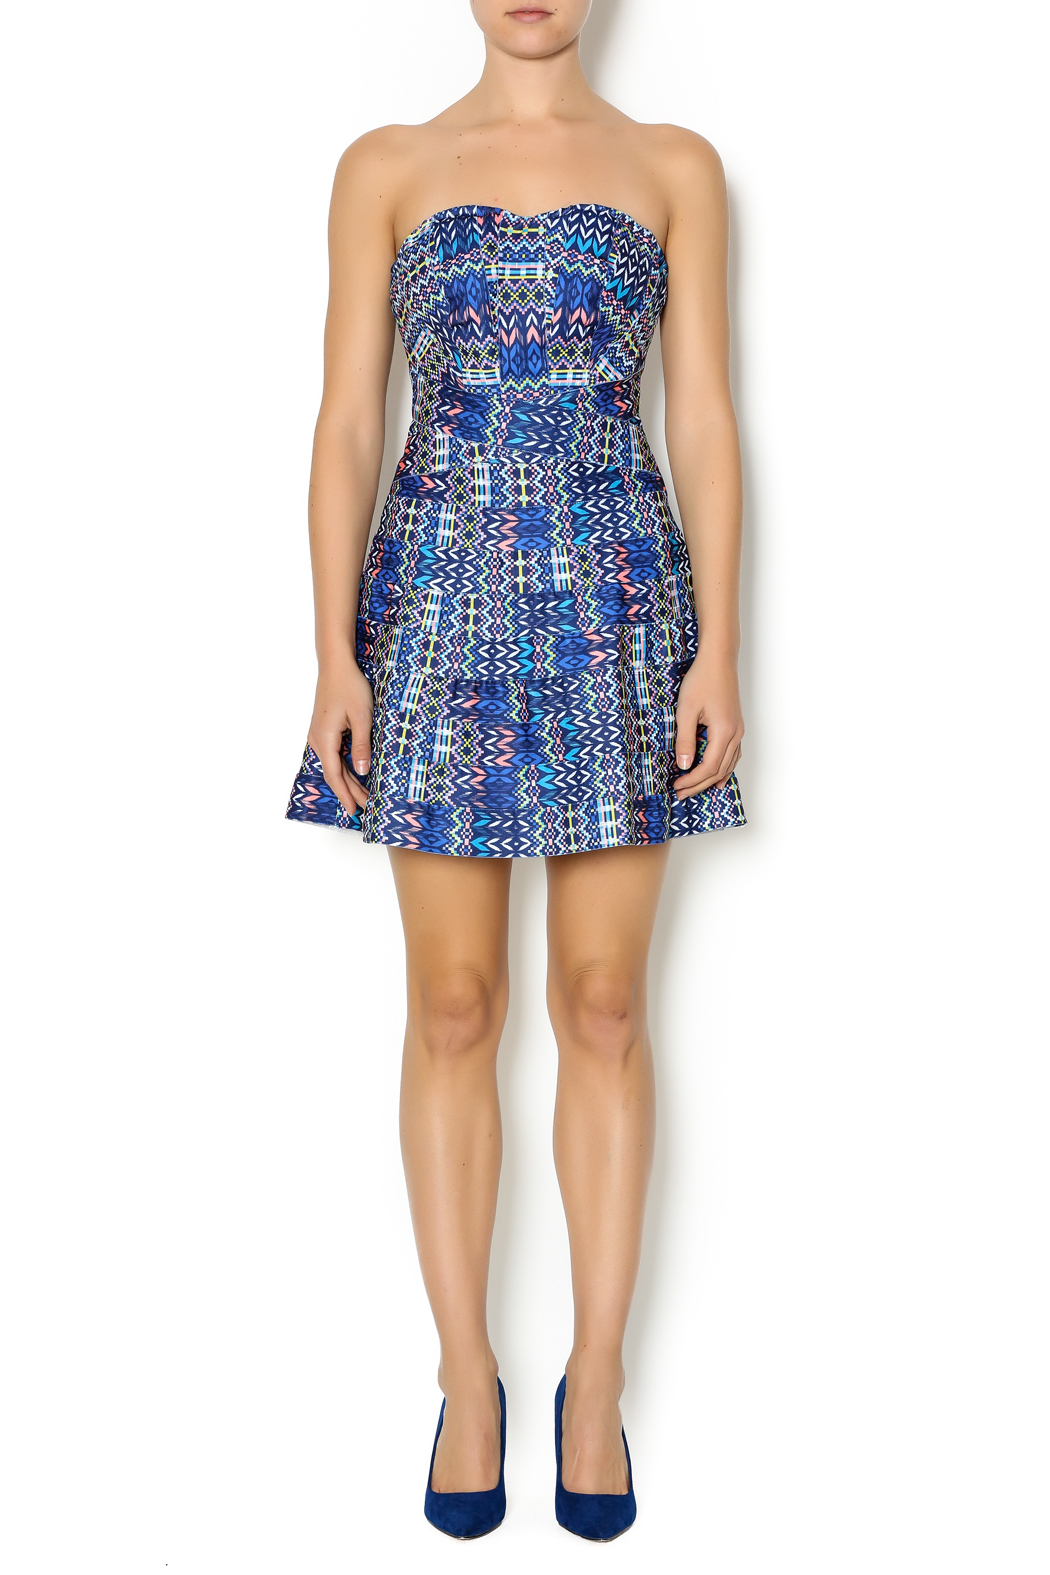 Wow Couture Blue Multi Sweetheart Dress - Front Full Image